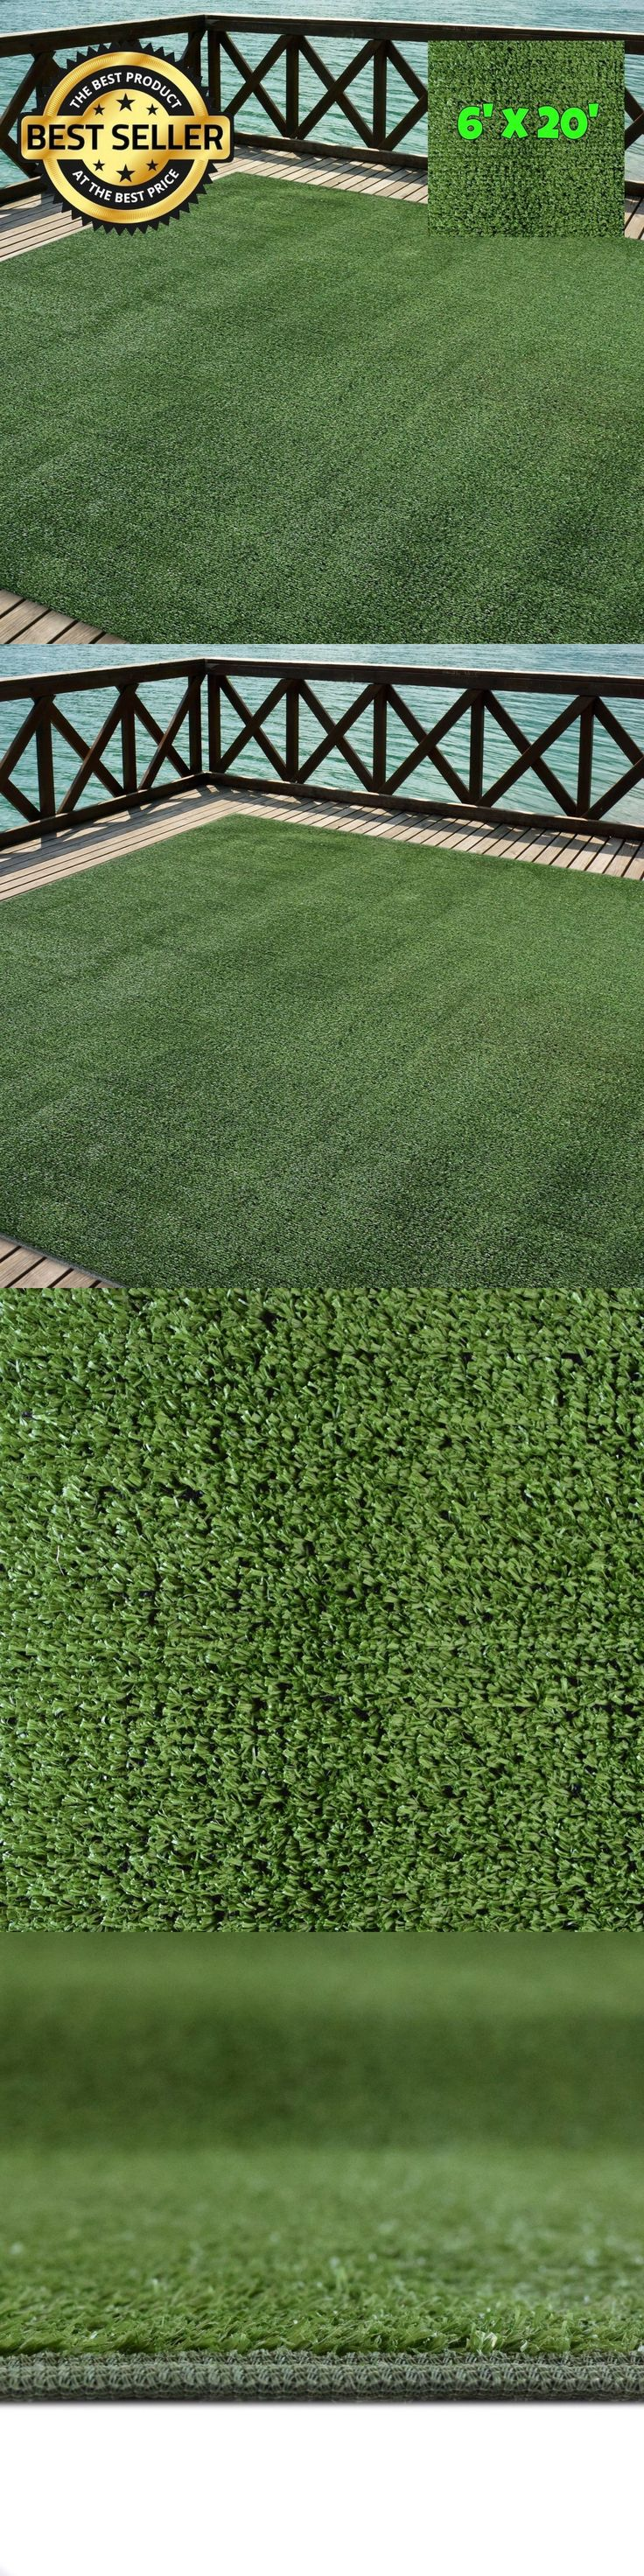 Synthetic Grass 181031: Outdoor Turf Rug Green Artificial Grass Indoor Deck Patio Carpet Mat 6 X 20 -> BUY IT NOW ONLY: $133.59 on eBay!